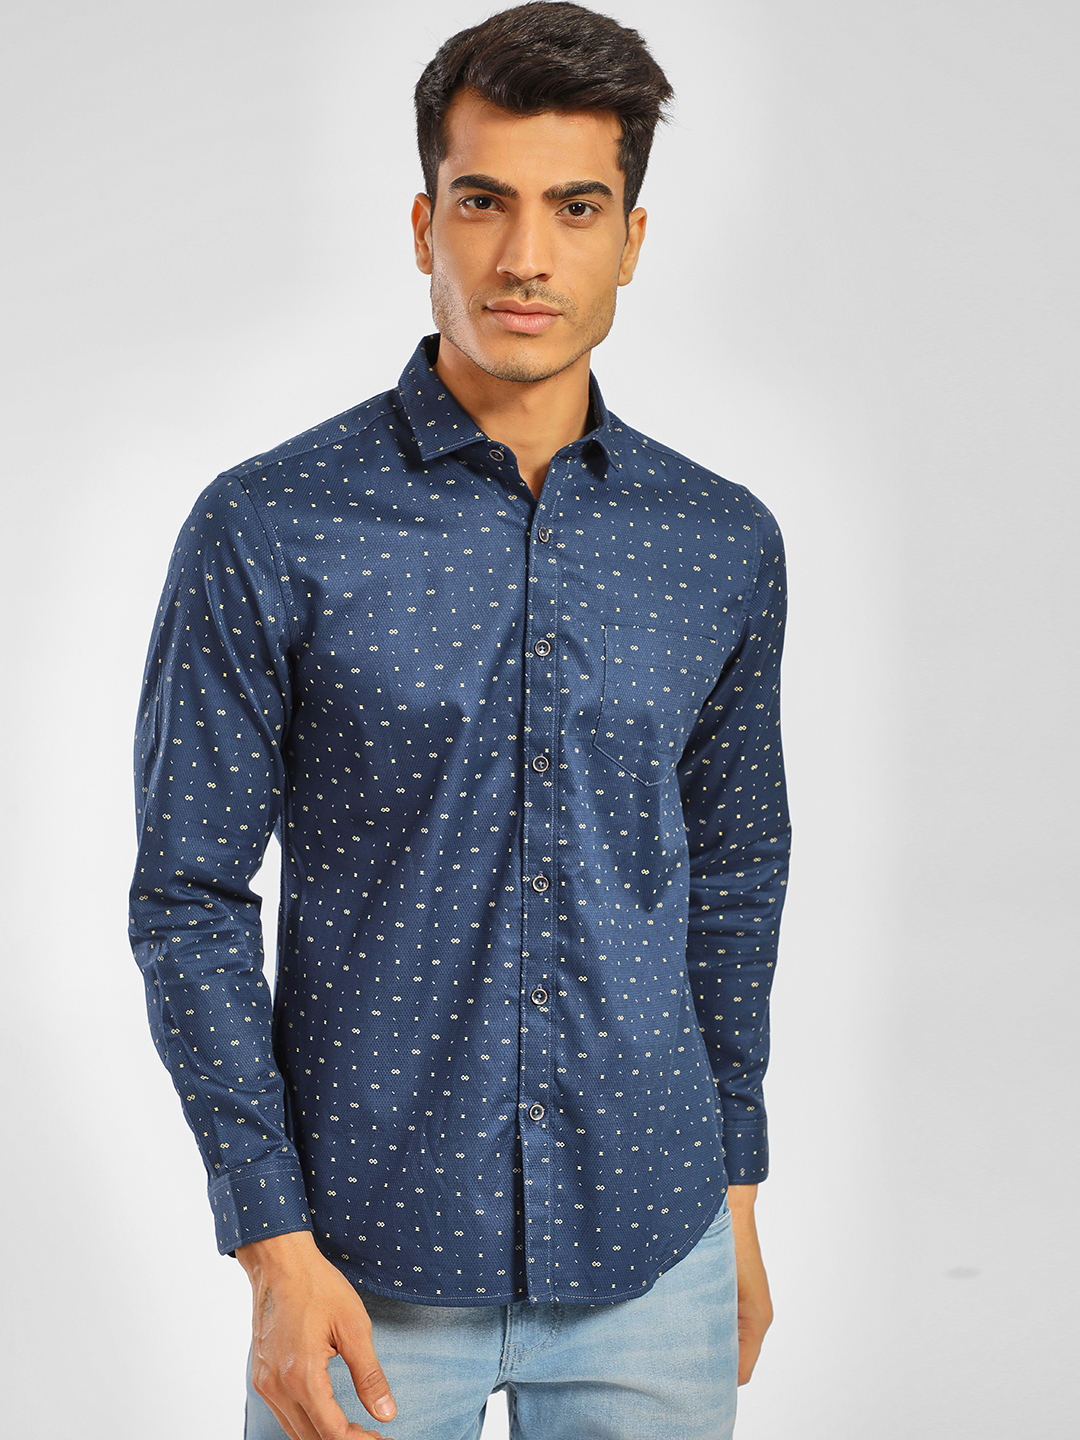 Indigo Nation Blue Long Sleeve Printed Shirt 1